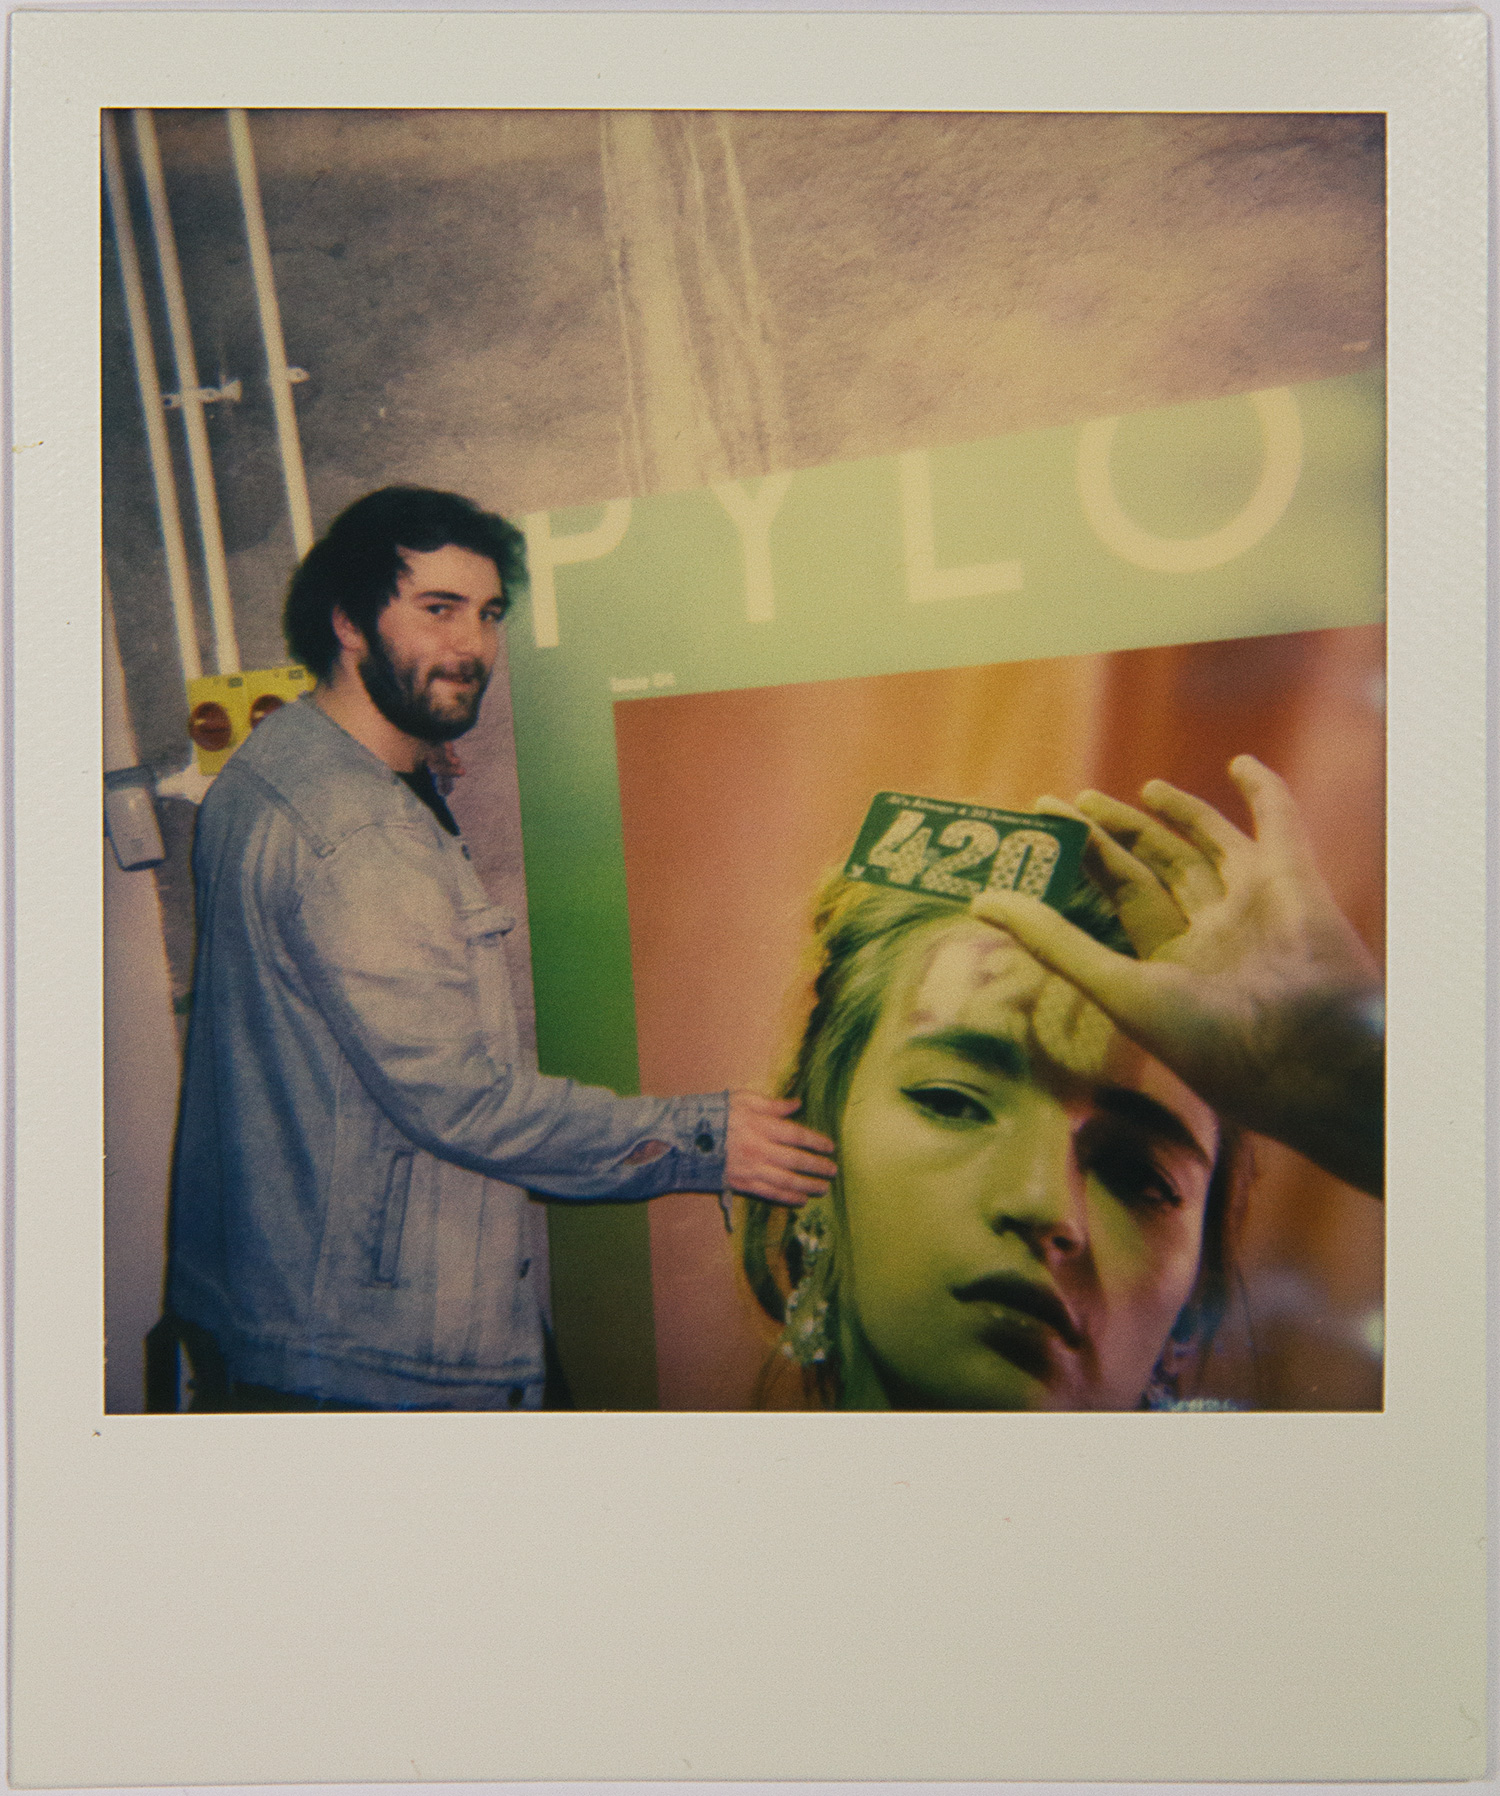 PYLOT ISSUE 04 LAUNCH PARTY IMPOSSIBLE PROJECT 15